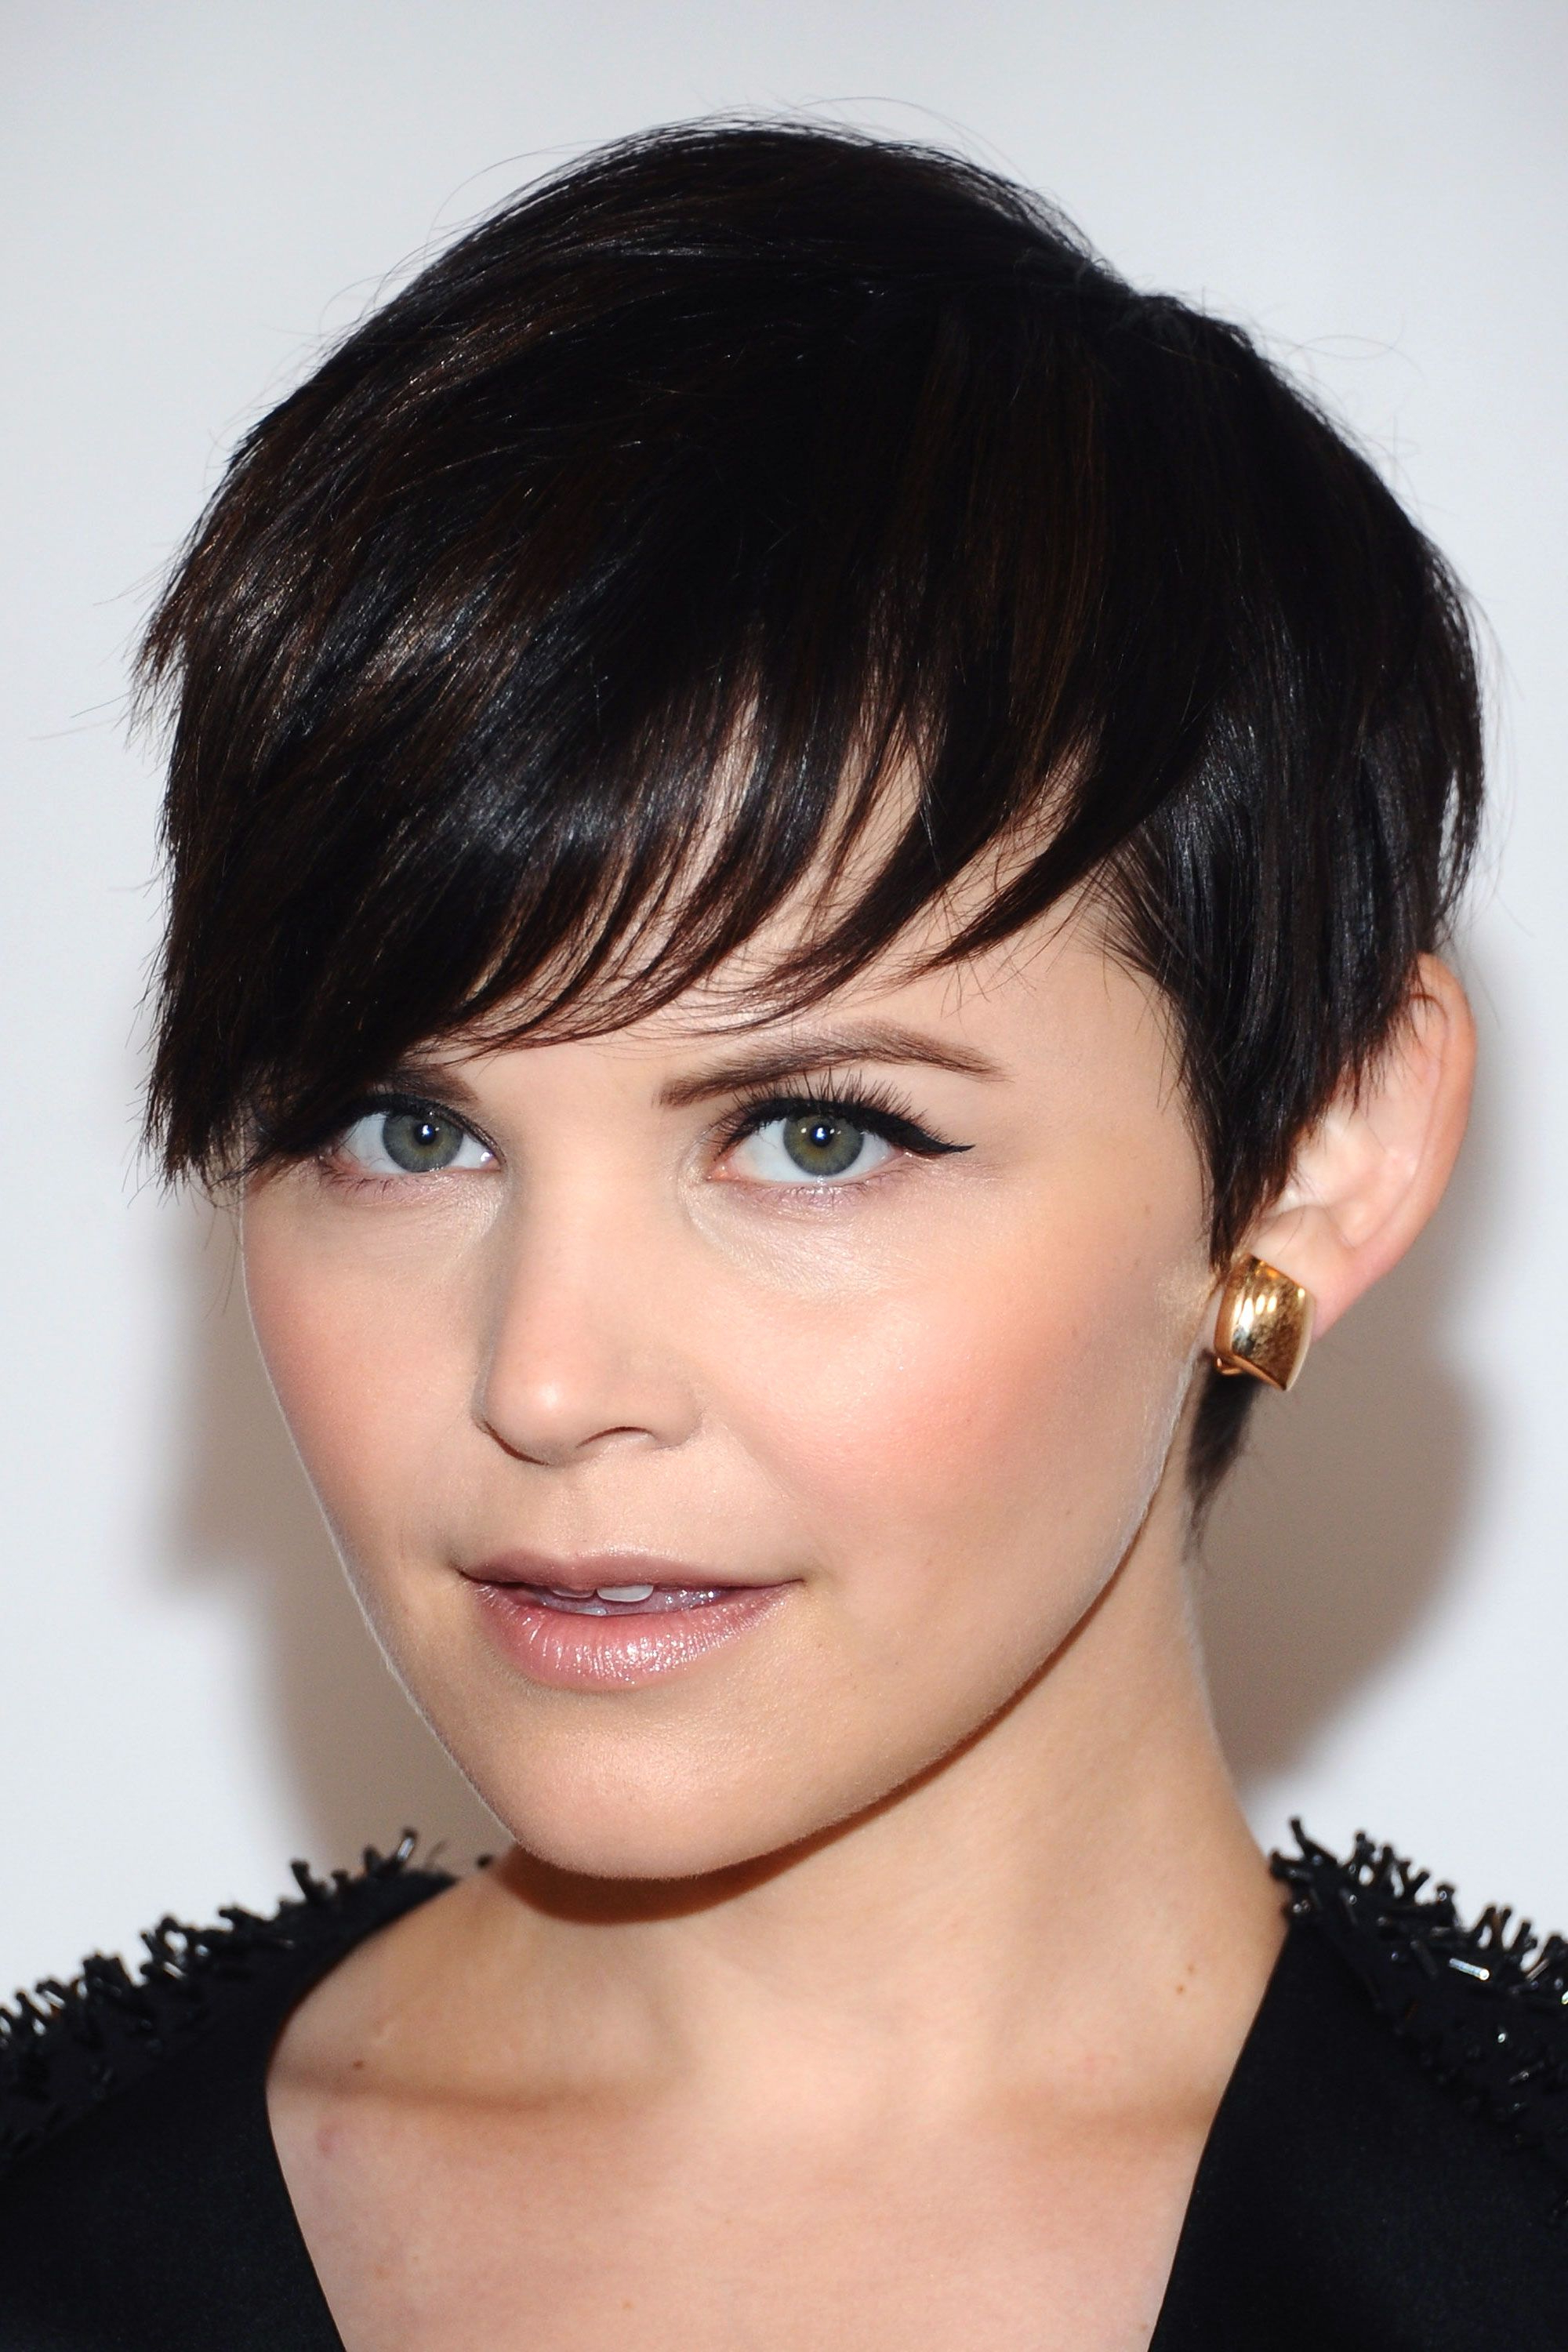 60+ Pixie Cuts We Love For 2019 – Short Pixie Hairstyles Inside Pixie Haircuts With Tight Curls (View 12 of 20)